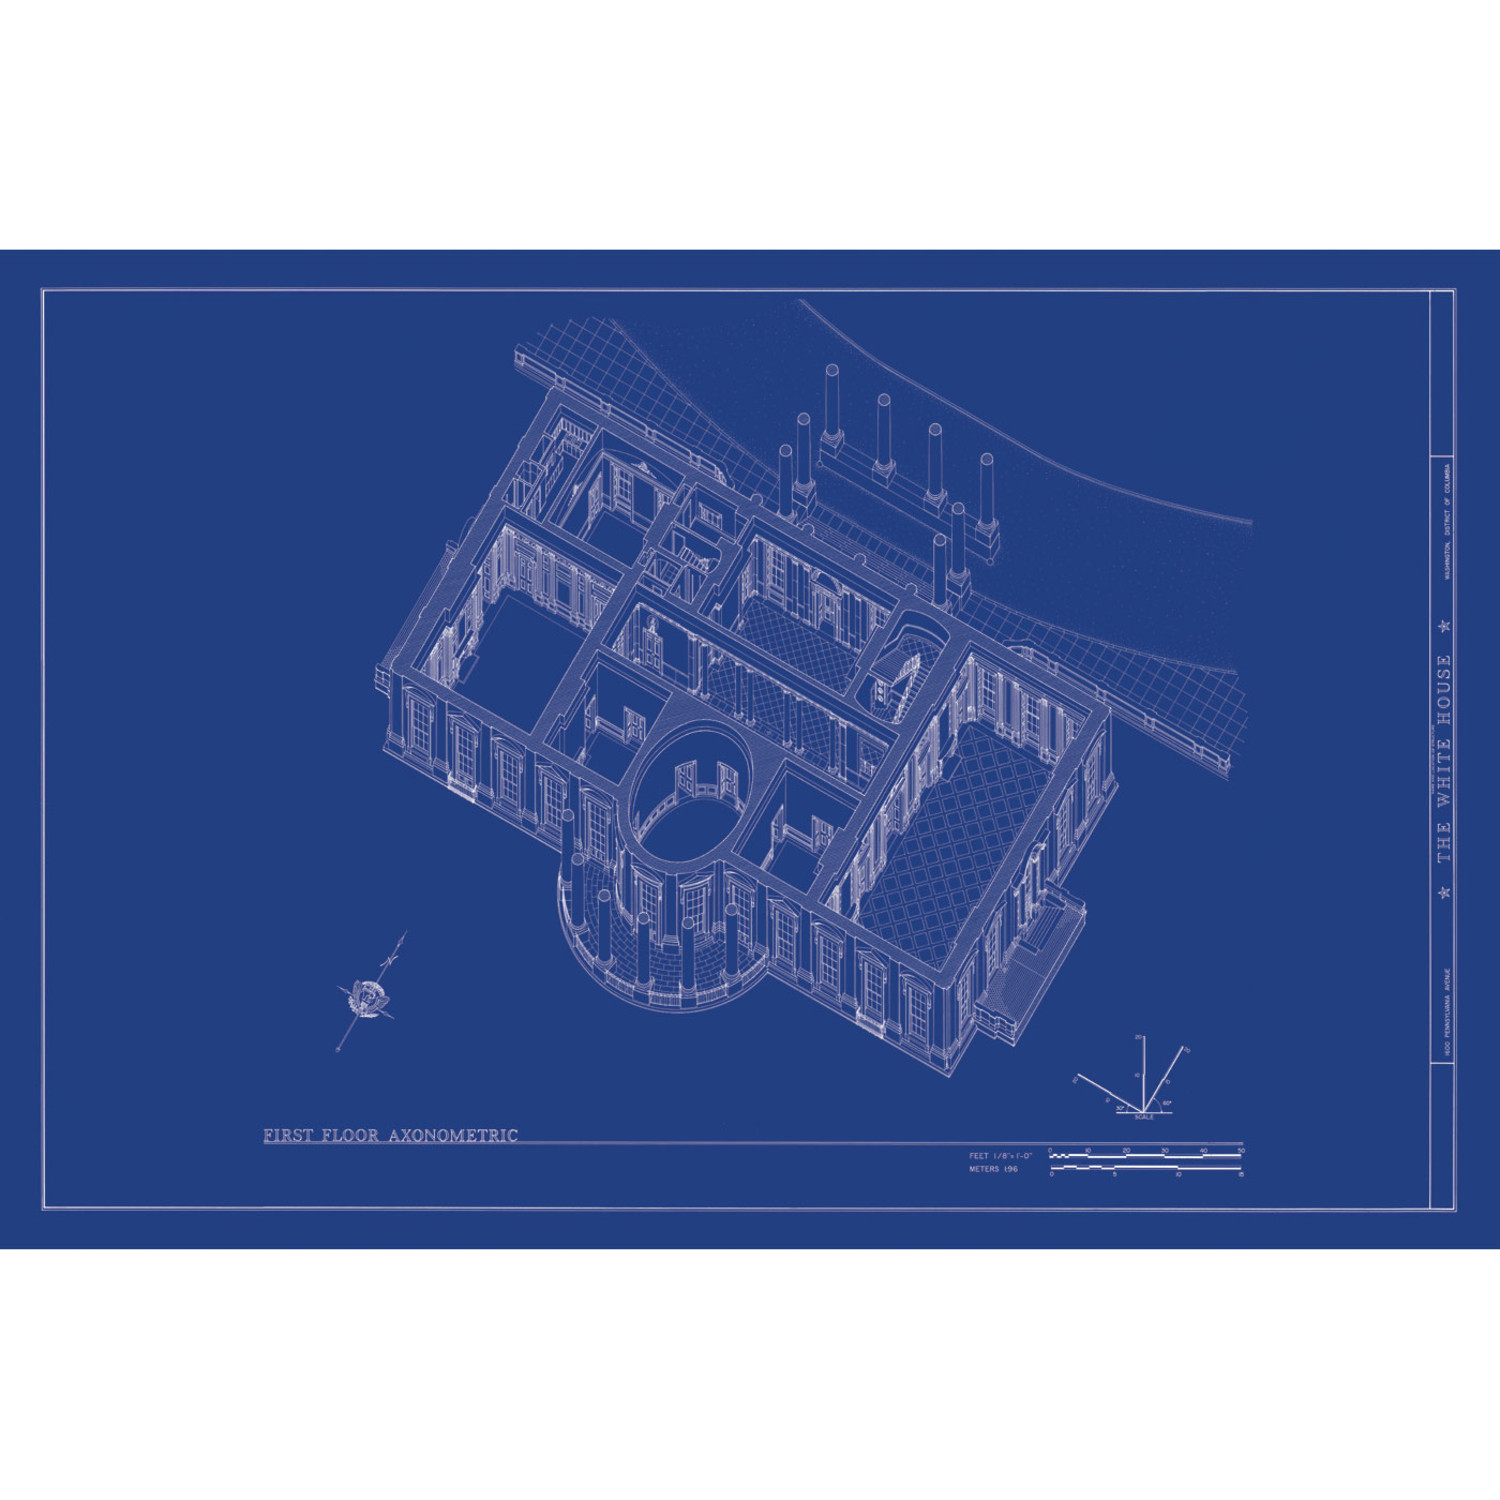 White House Axonometric - Old Blueprints - Touch of Modern